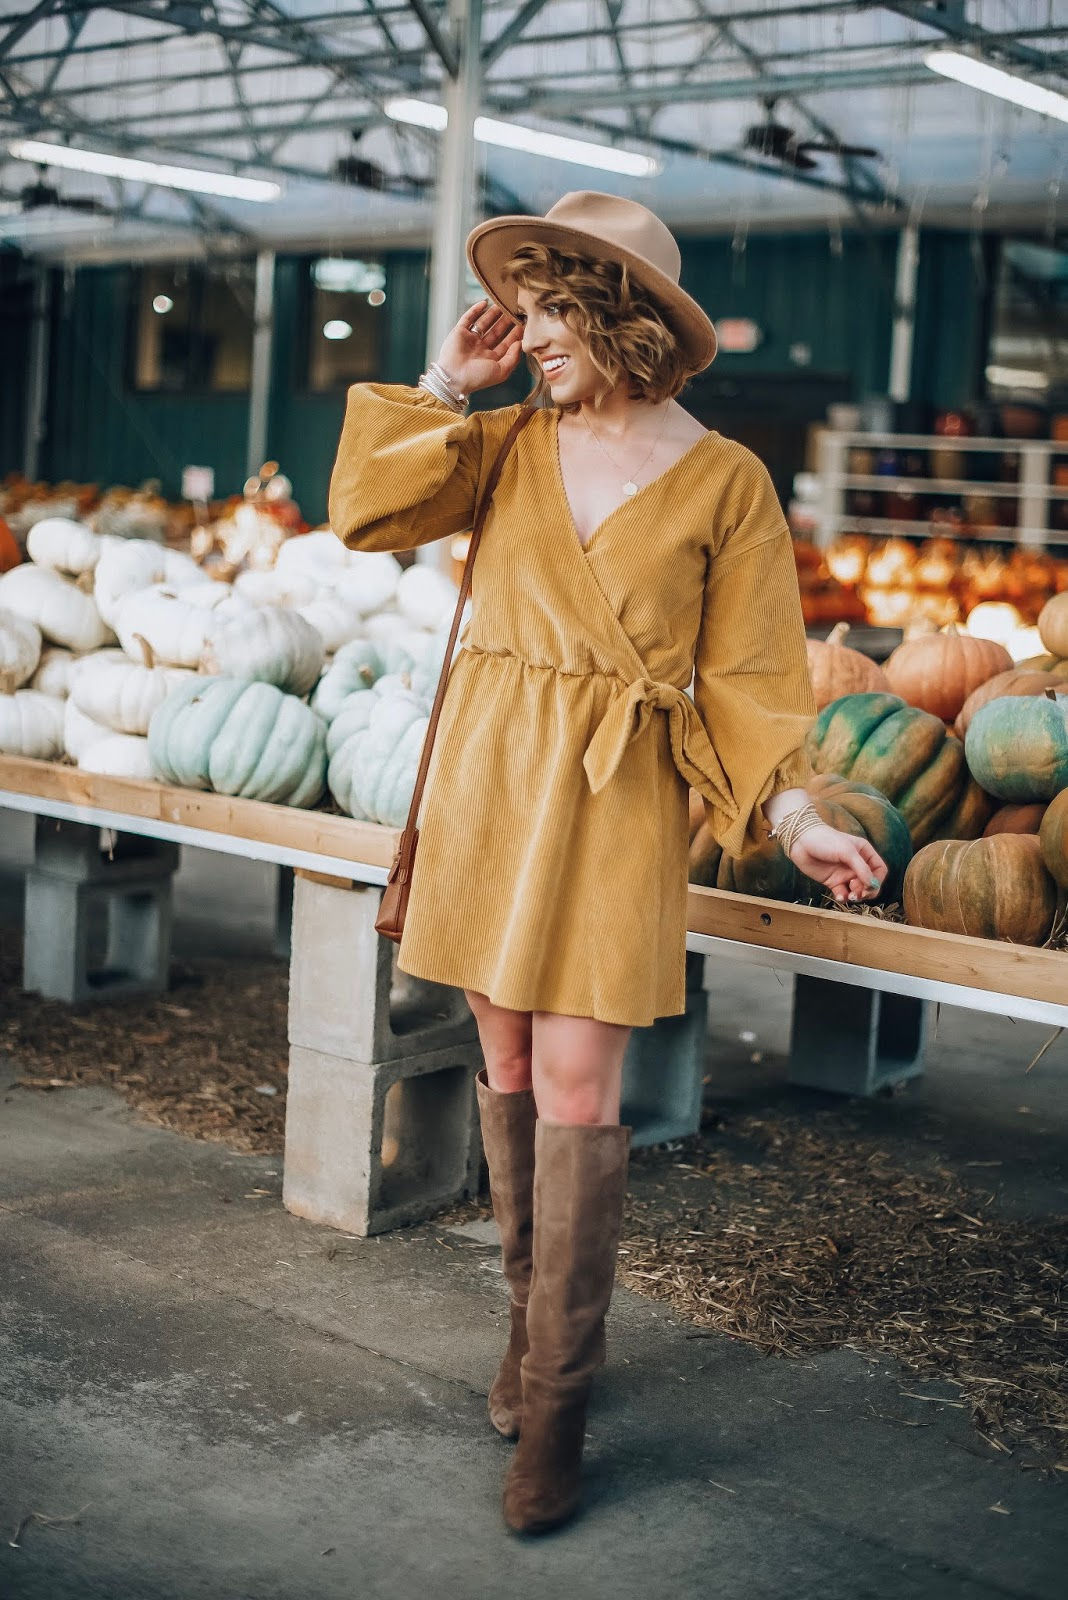 $51 Marigold Corduroy Wrap Dress + Pumpkin Shopping - Something Delightful Blog #fallstyle #pumpkins #affordablestyle